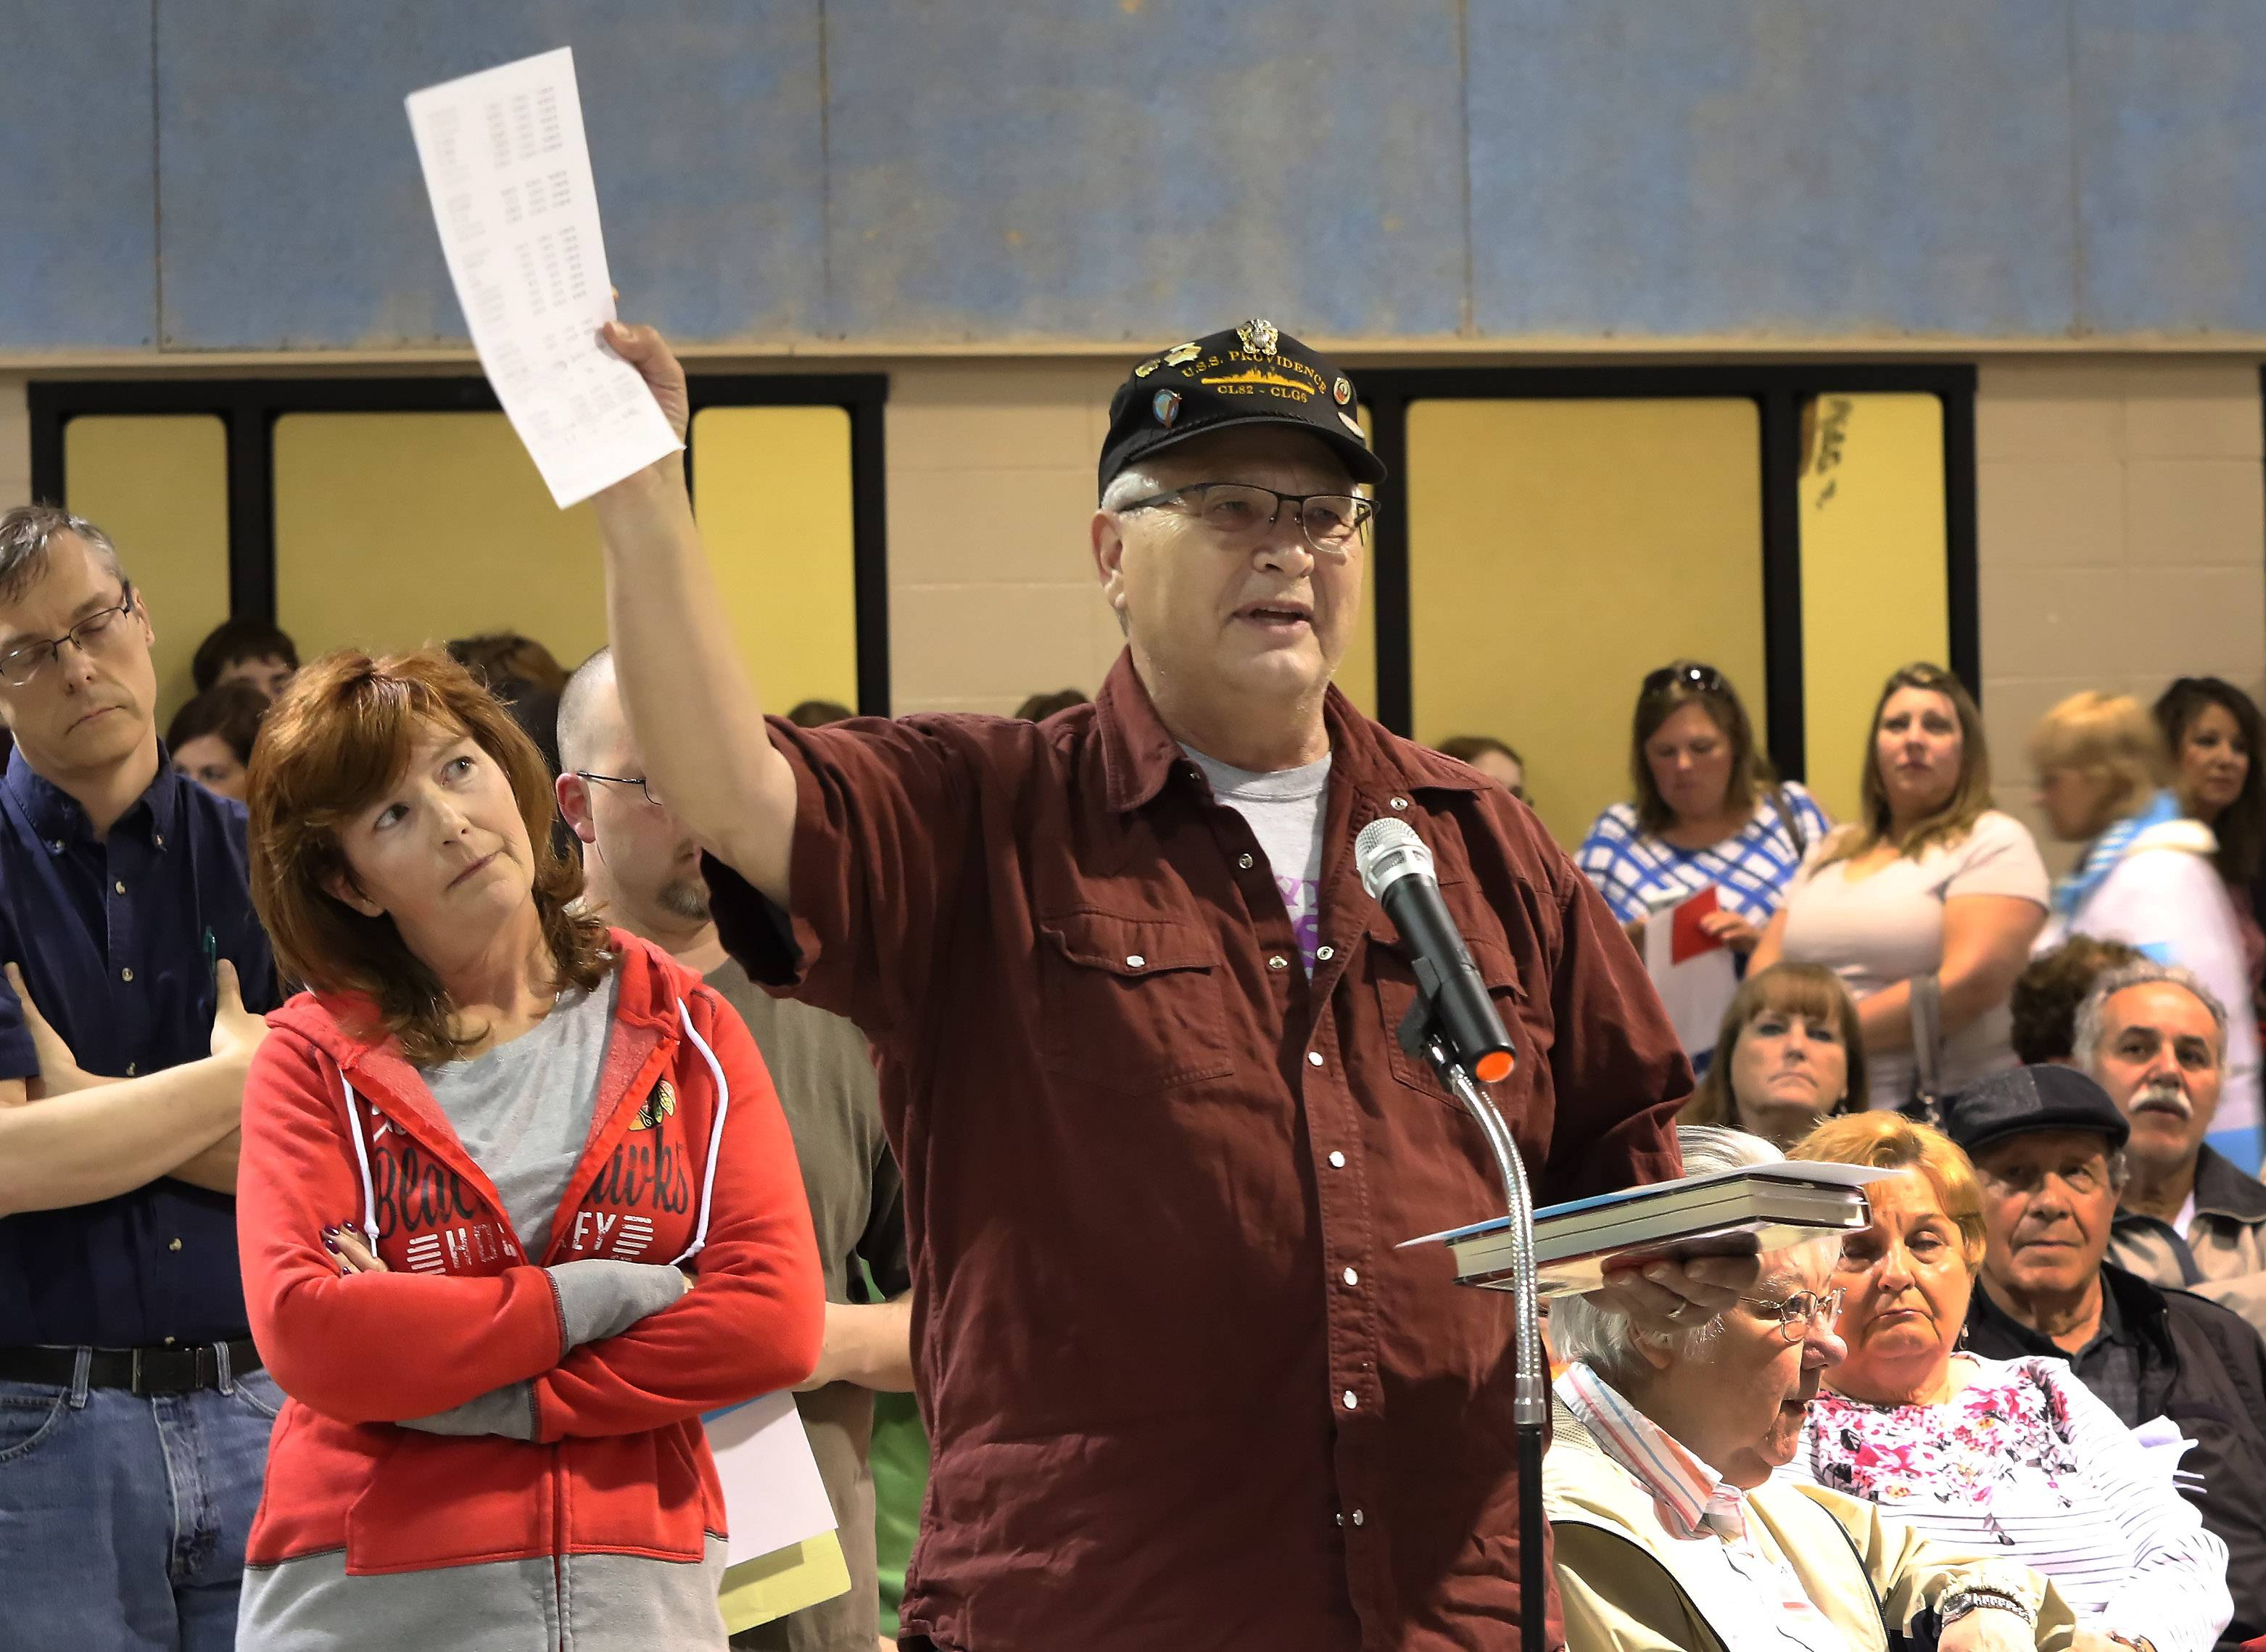 Lake Villa resident Larry Kurtz voices his displeasure during the town hall meeting Monday on whether to authorize the Lake Villa Township board to move forward with the proposed purchase of Antioch Golf Club.